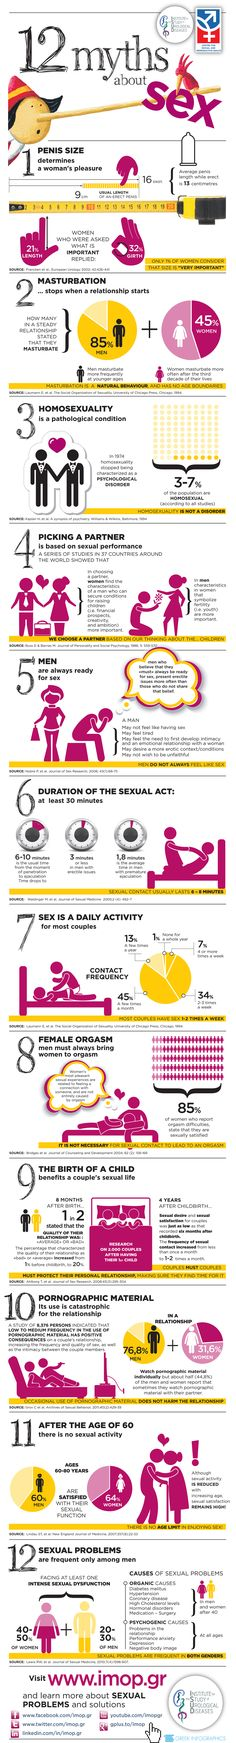 12 Myths About Sex  #Infographic #Sex #Myths #Relationships